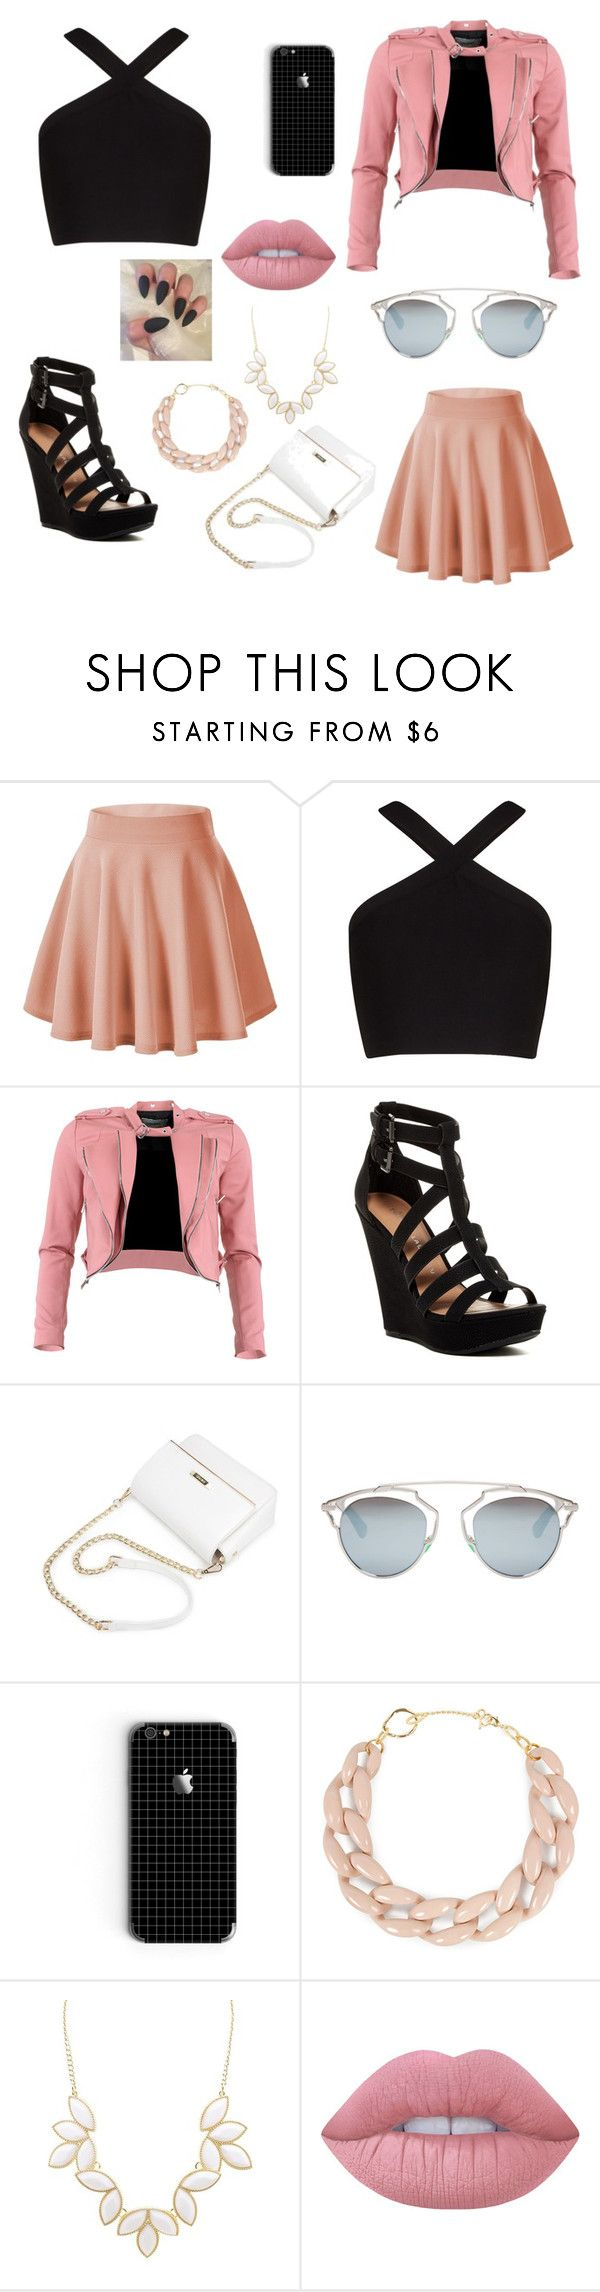 """""""Vestuario Pinking"""" by biancagramaje on Polyvore featuring BCBGMAXAZRIA, FRACOMINA, Chinese Laundry, Christian Dior, DIANA BROUSSARD, Charlotte Russe, Lime Crime and modern"""